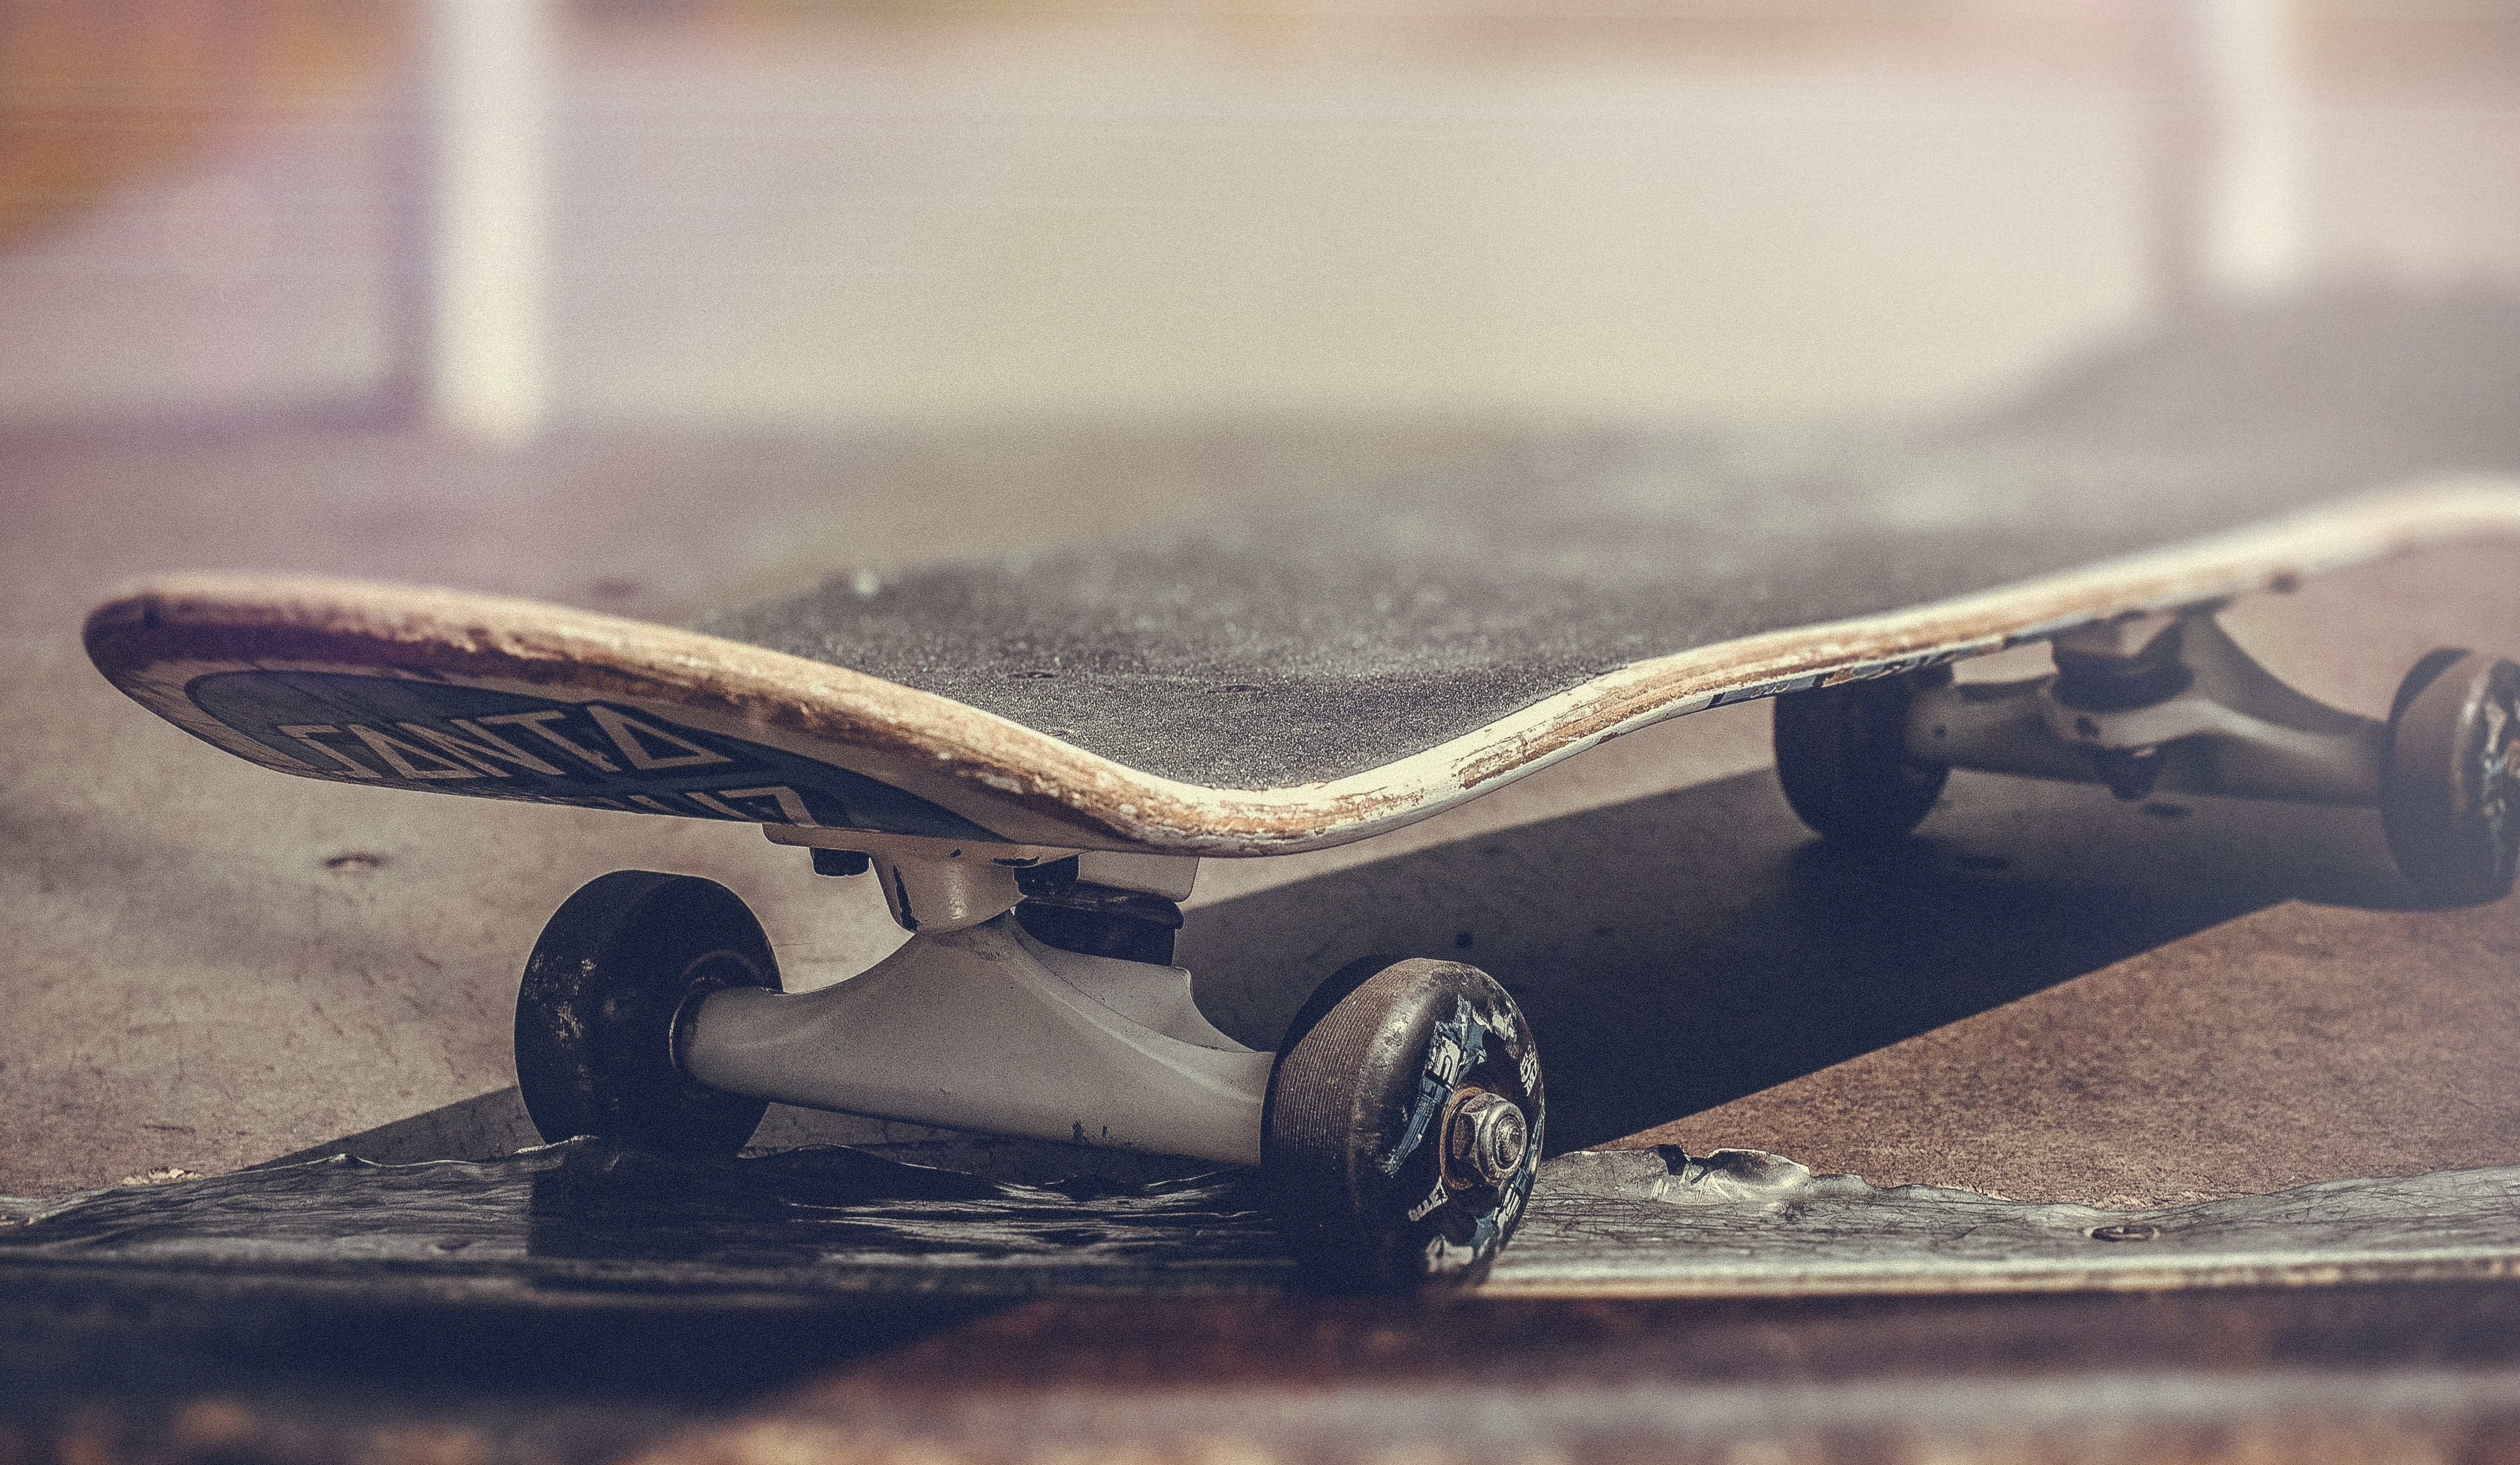 A skateboard at the edge of a step with a vintage filter